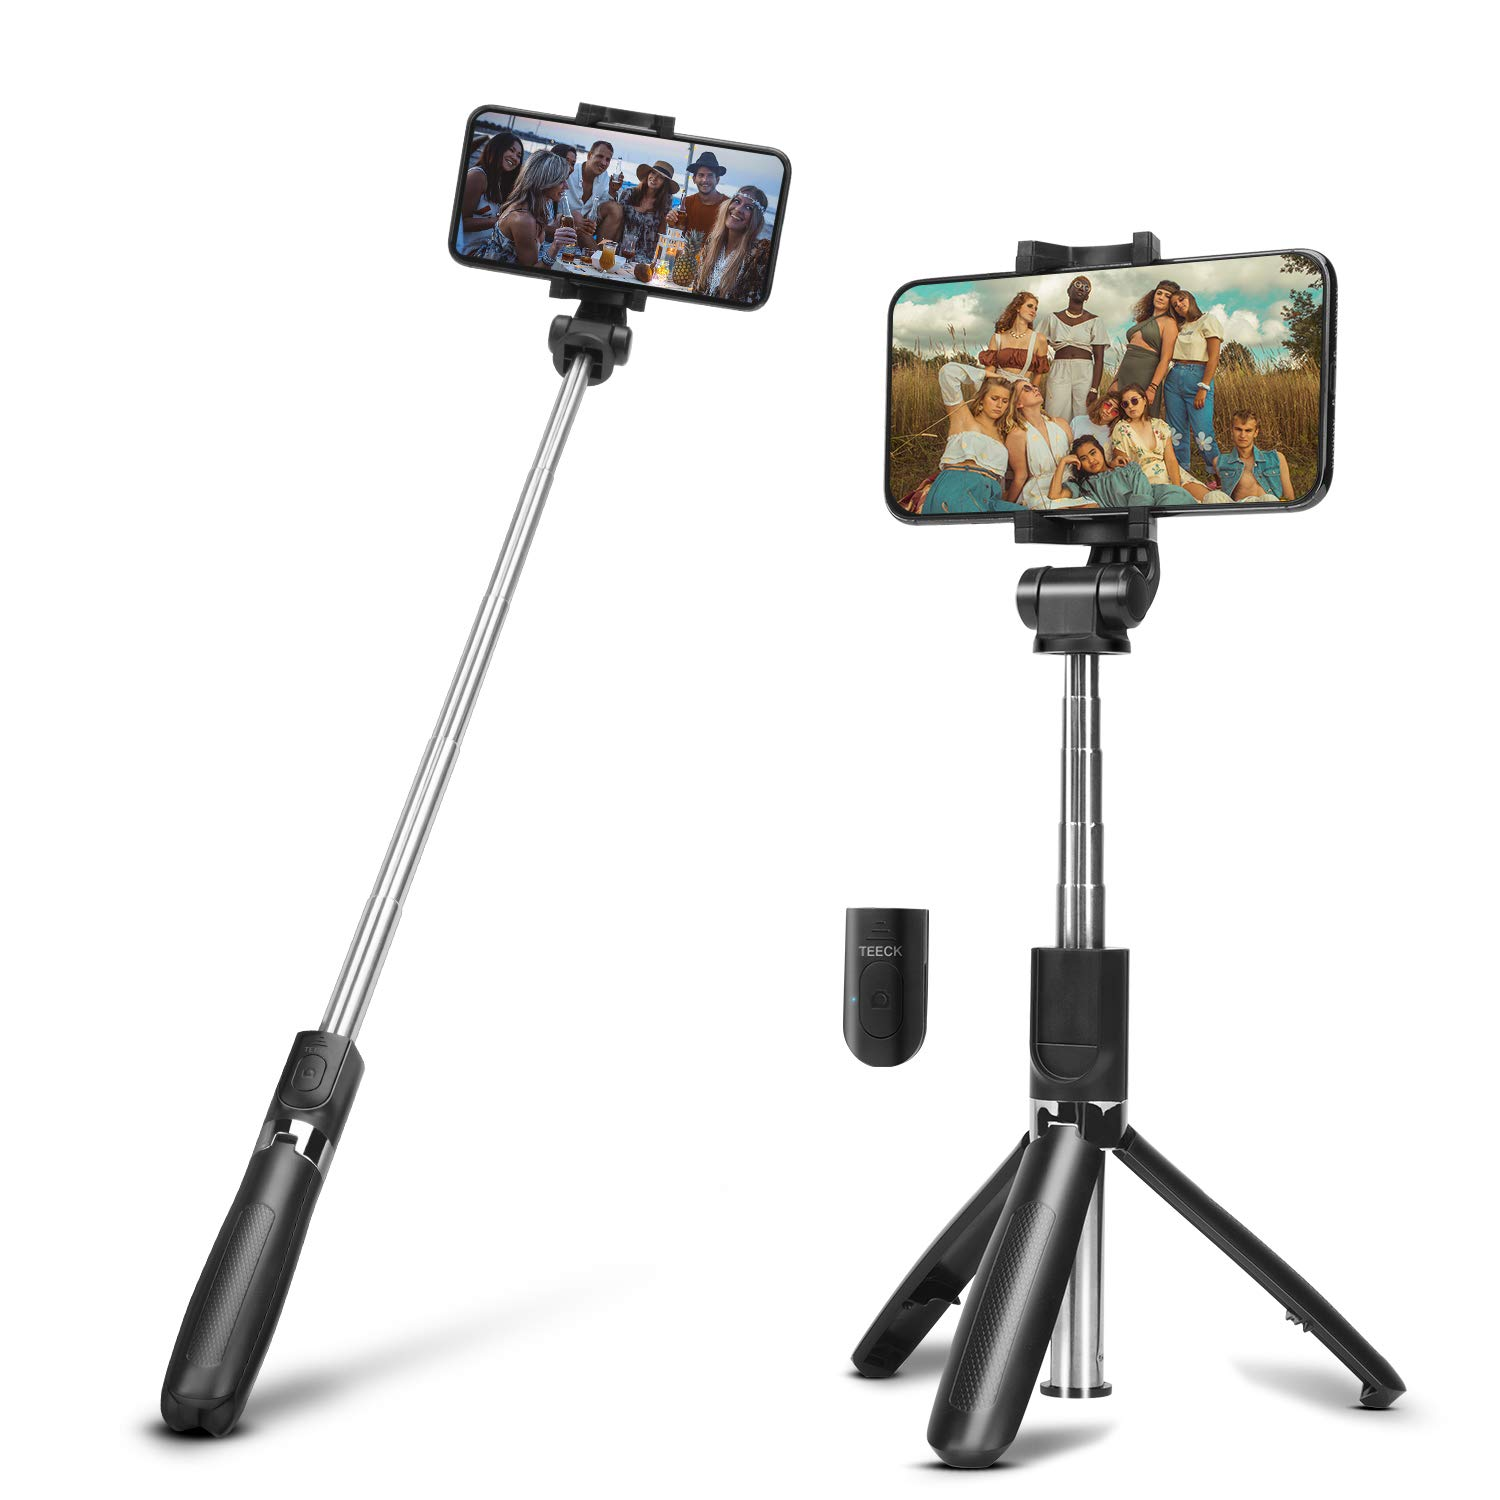 Selfie Stick Tripod with Bluetooth Remote,TEECK Extendable Wireless Cell Phone Tripod,iPhone Holder for Tripod Compatible with iPhone X/XS Max/iPhone 8/8 Plus iPhone 7/7 Plus,Galaxy S9/S9 Plus/S8/S7